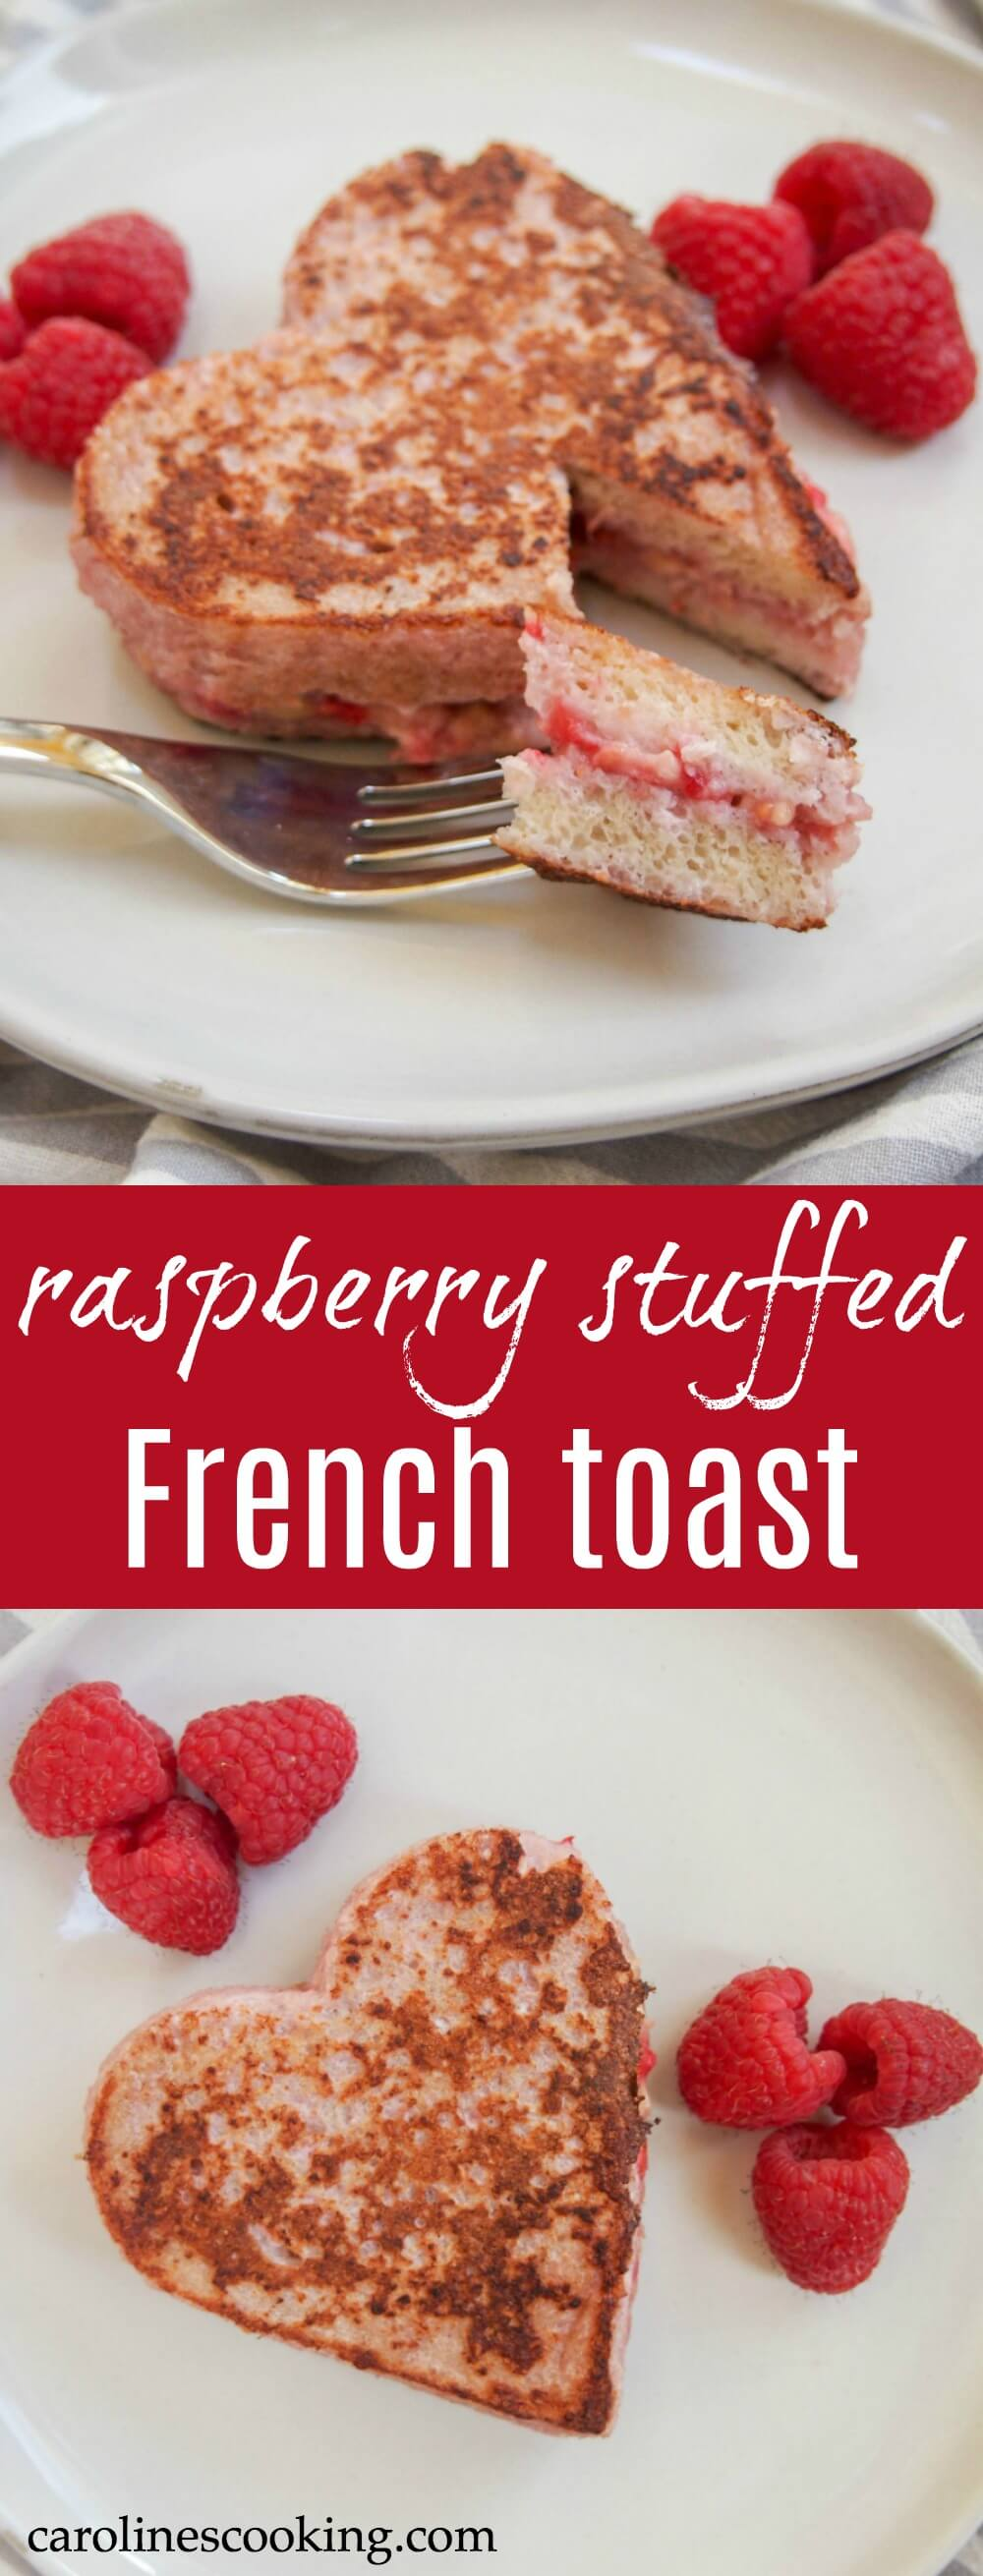 Why not treat someone to a fun and delicious raspberry stuffed French toast for breakfast? Easy to make, the banana raspberry filling takes French toast up a level, while still being relatively healthy. #frenchtoast #breakfast #valentinesday #raspberry